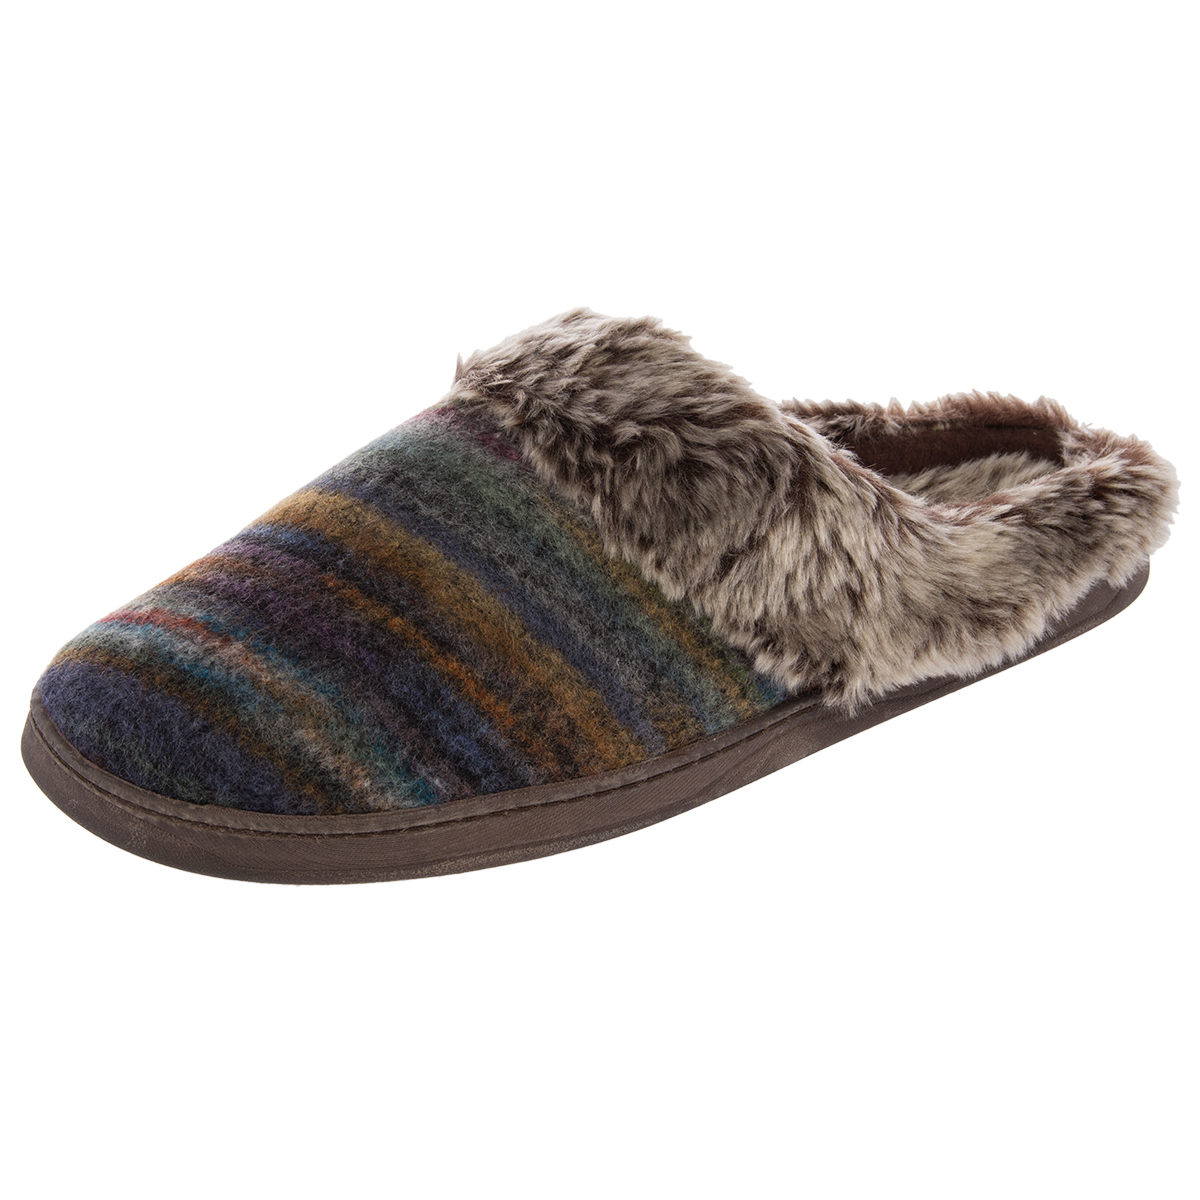 Aerosoles-Women-s-Cushioned-House-Slippers-Wool-Mule-Clogs-Indoor-Outdoor-Shoes thumbnail 8